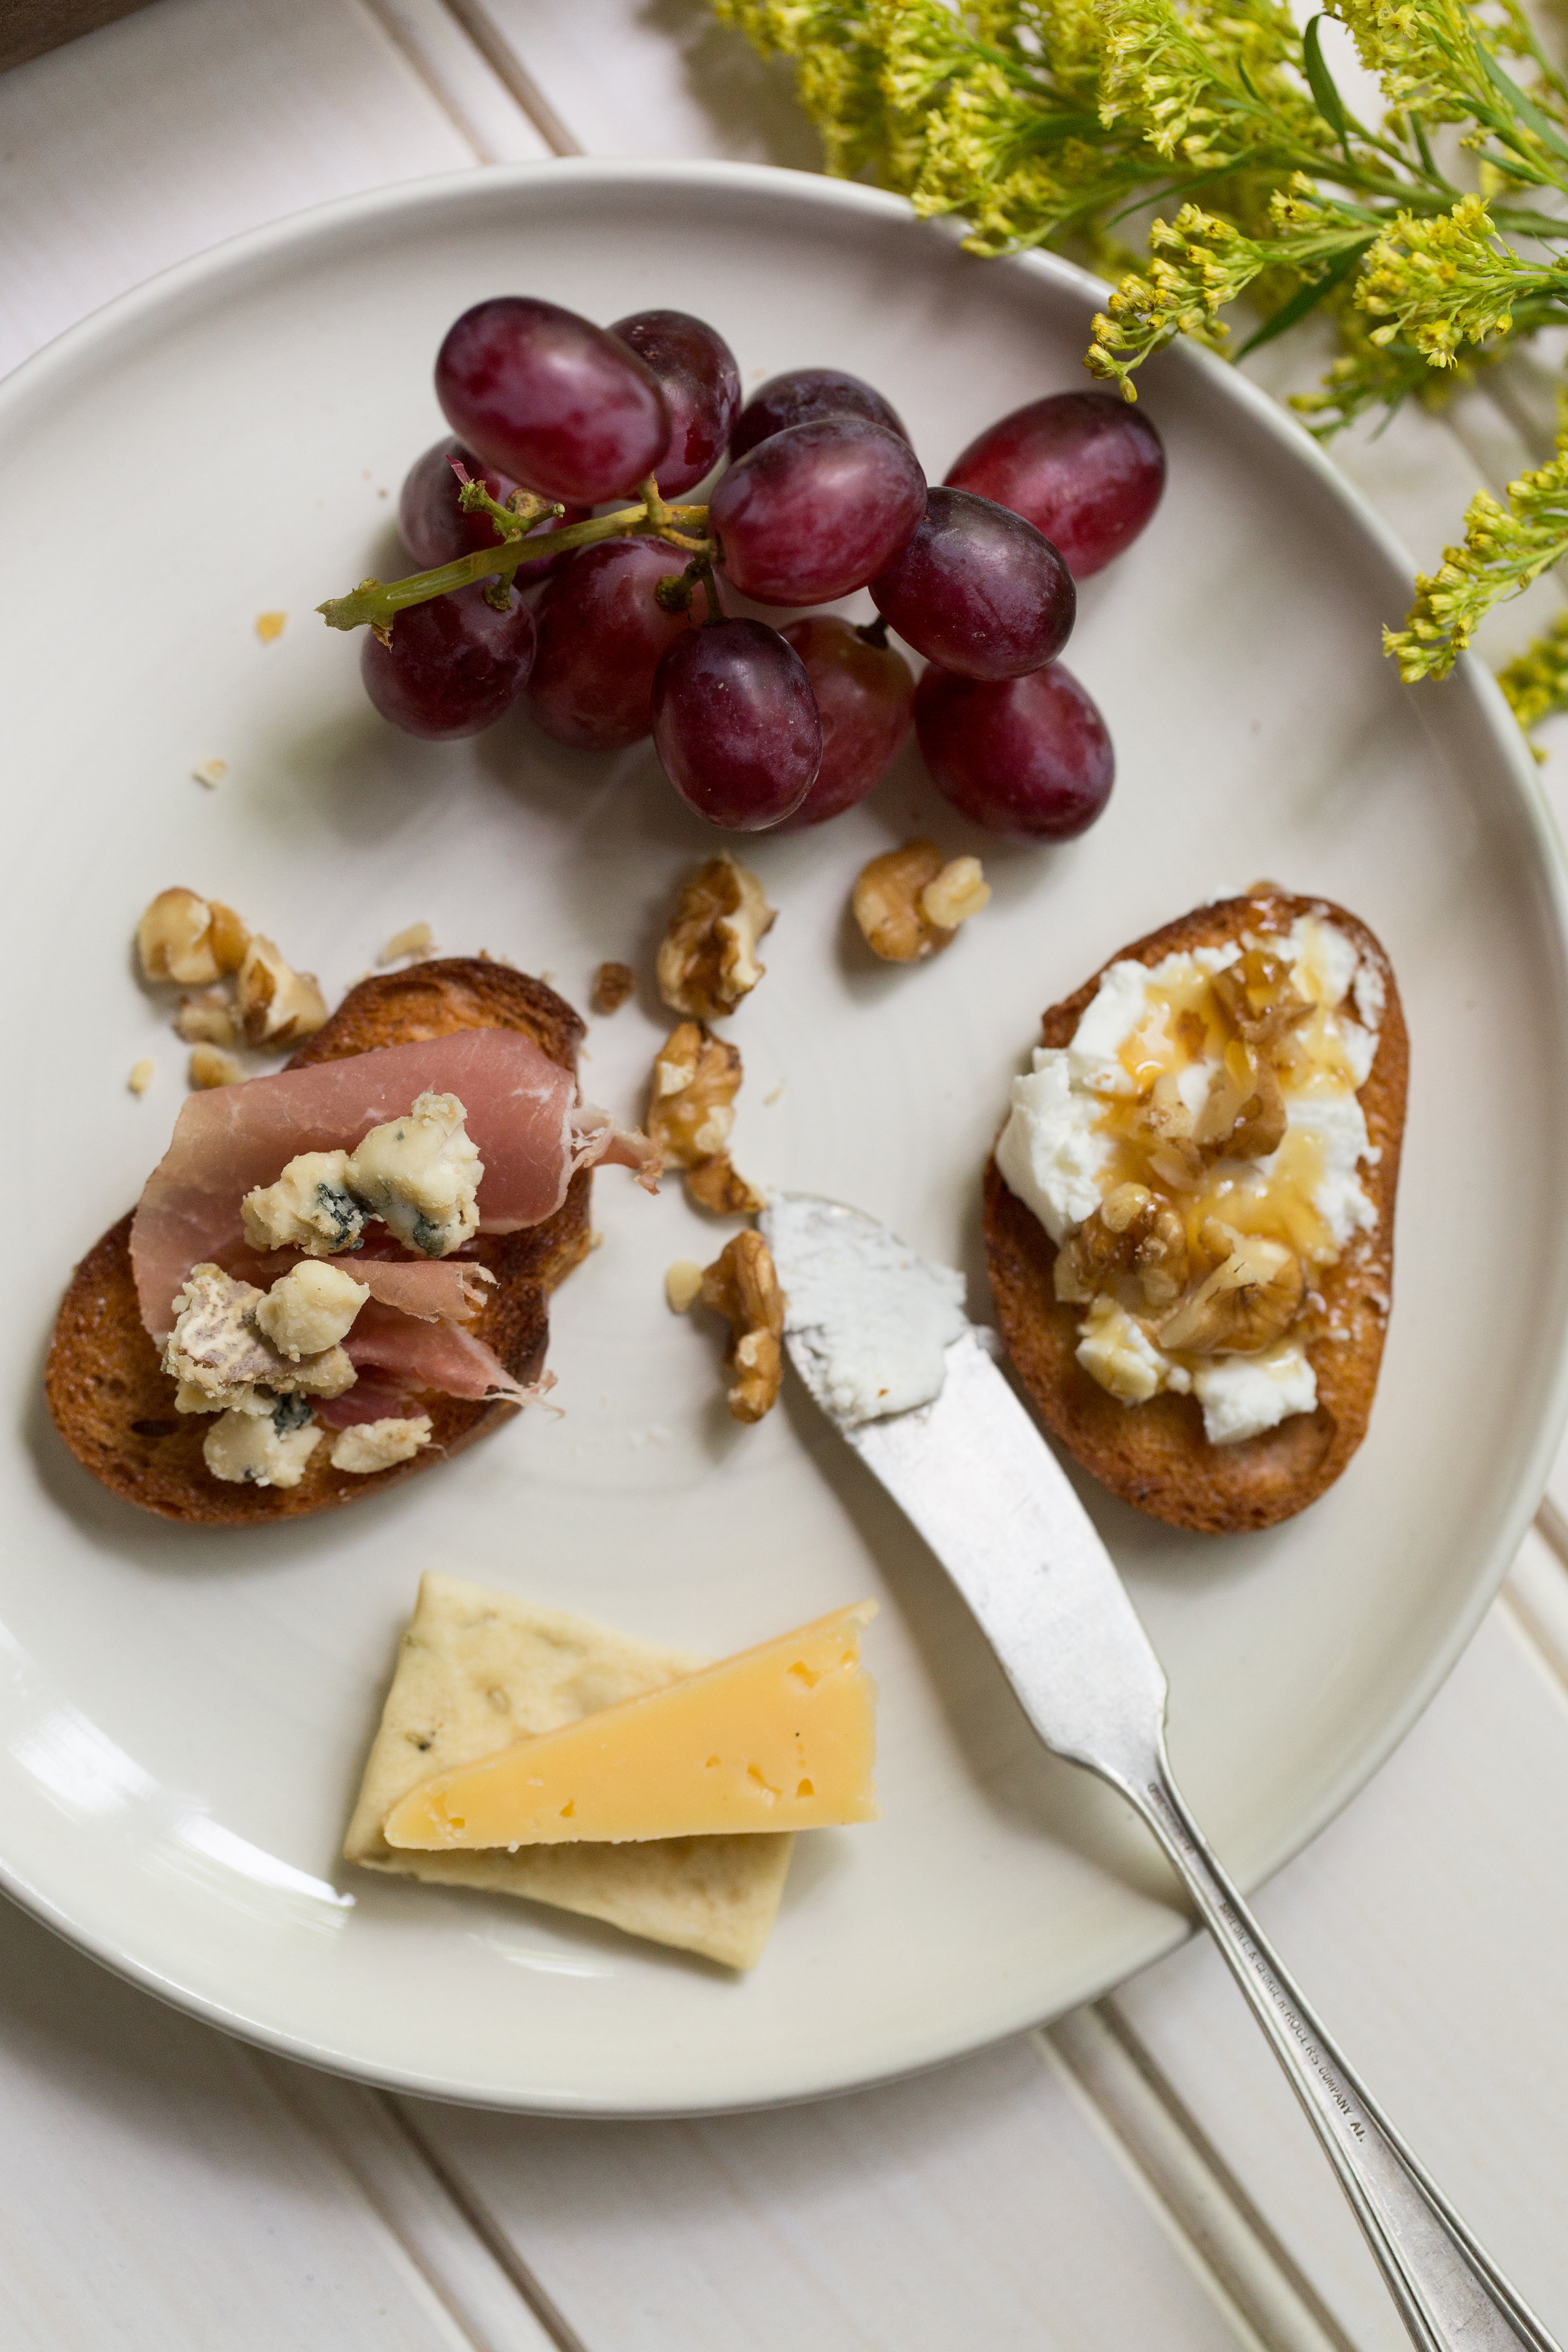 Hosting a dinner party? Make a Connecticut Cheeseplate